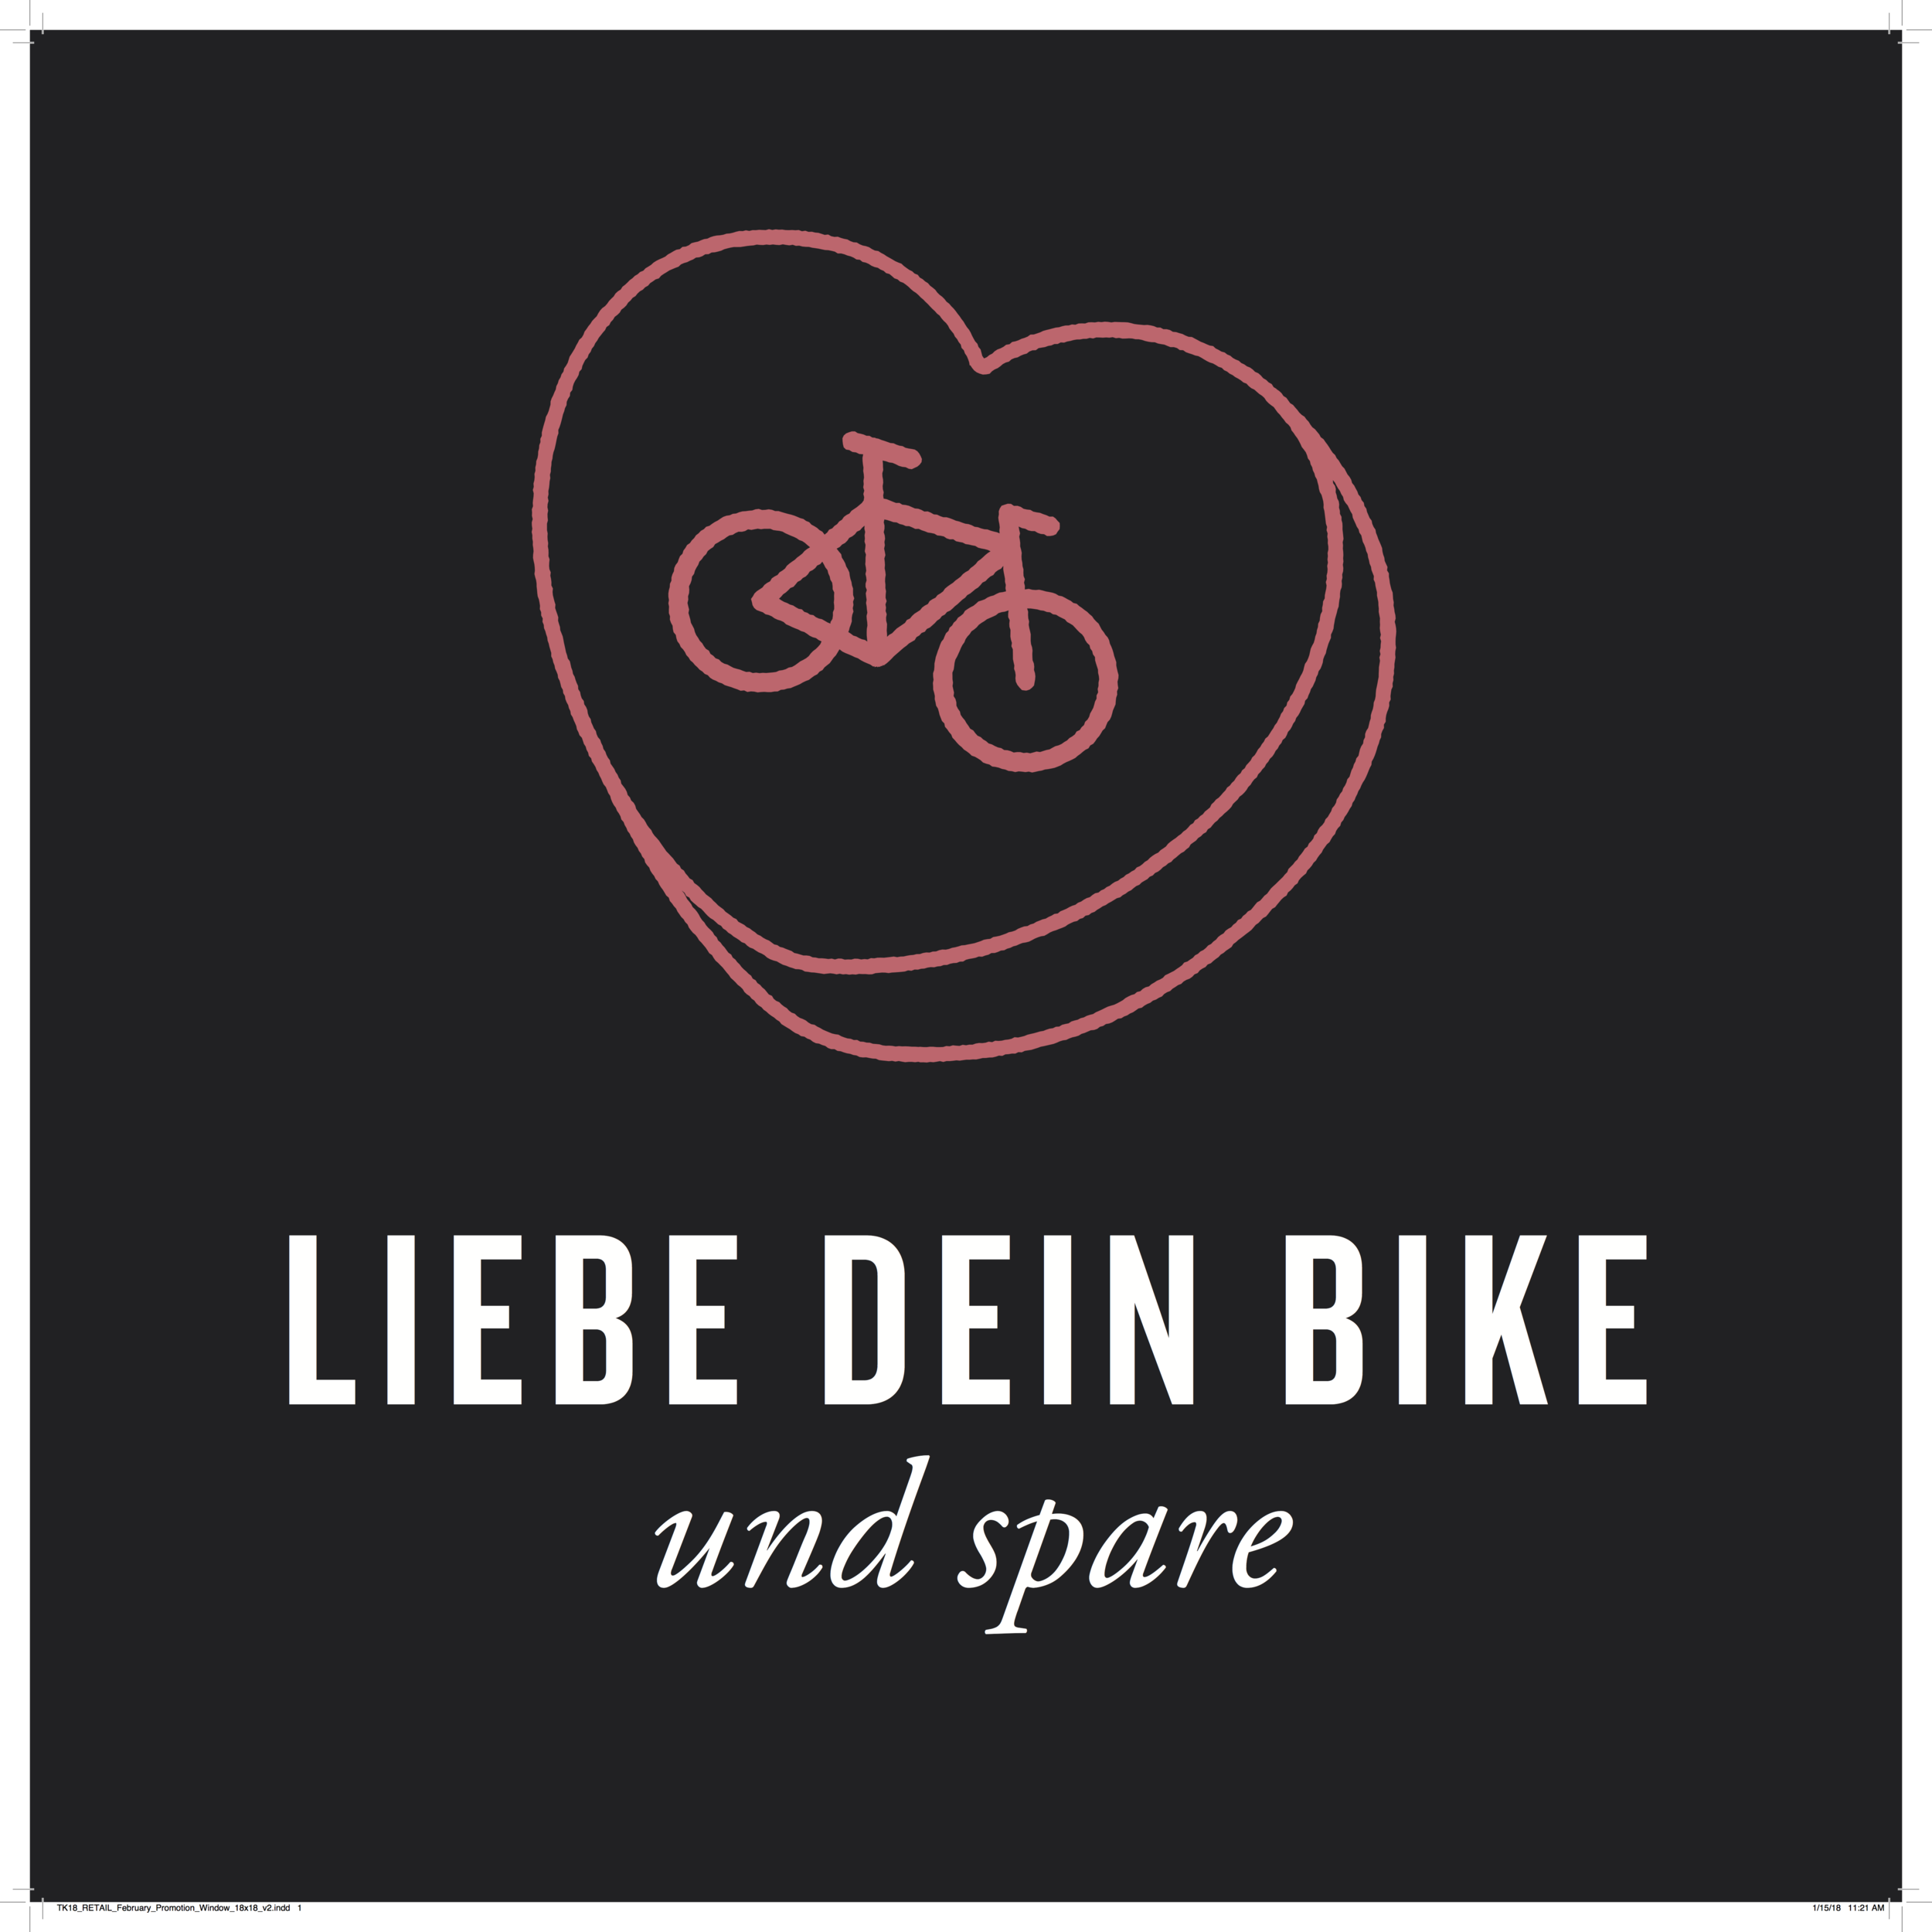 de_RETAIL_Love_your_bike_Promo_Window_18x18.png